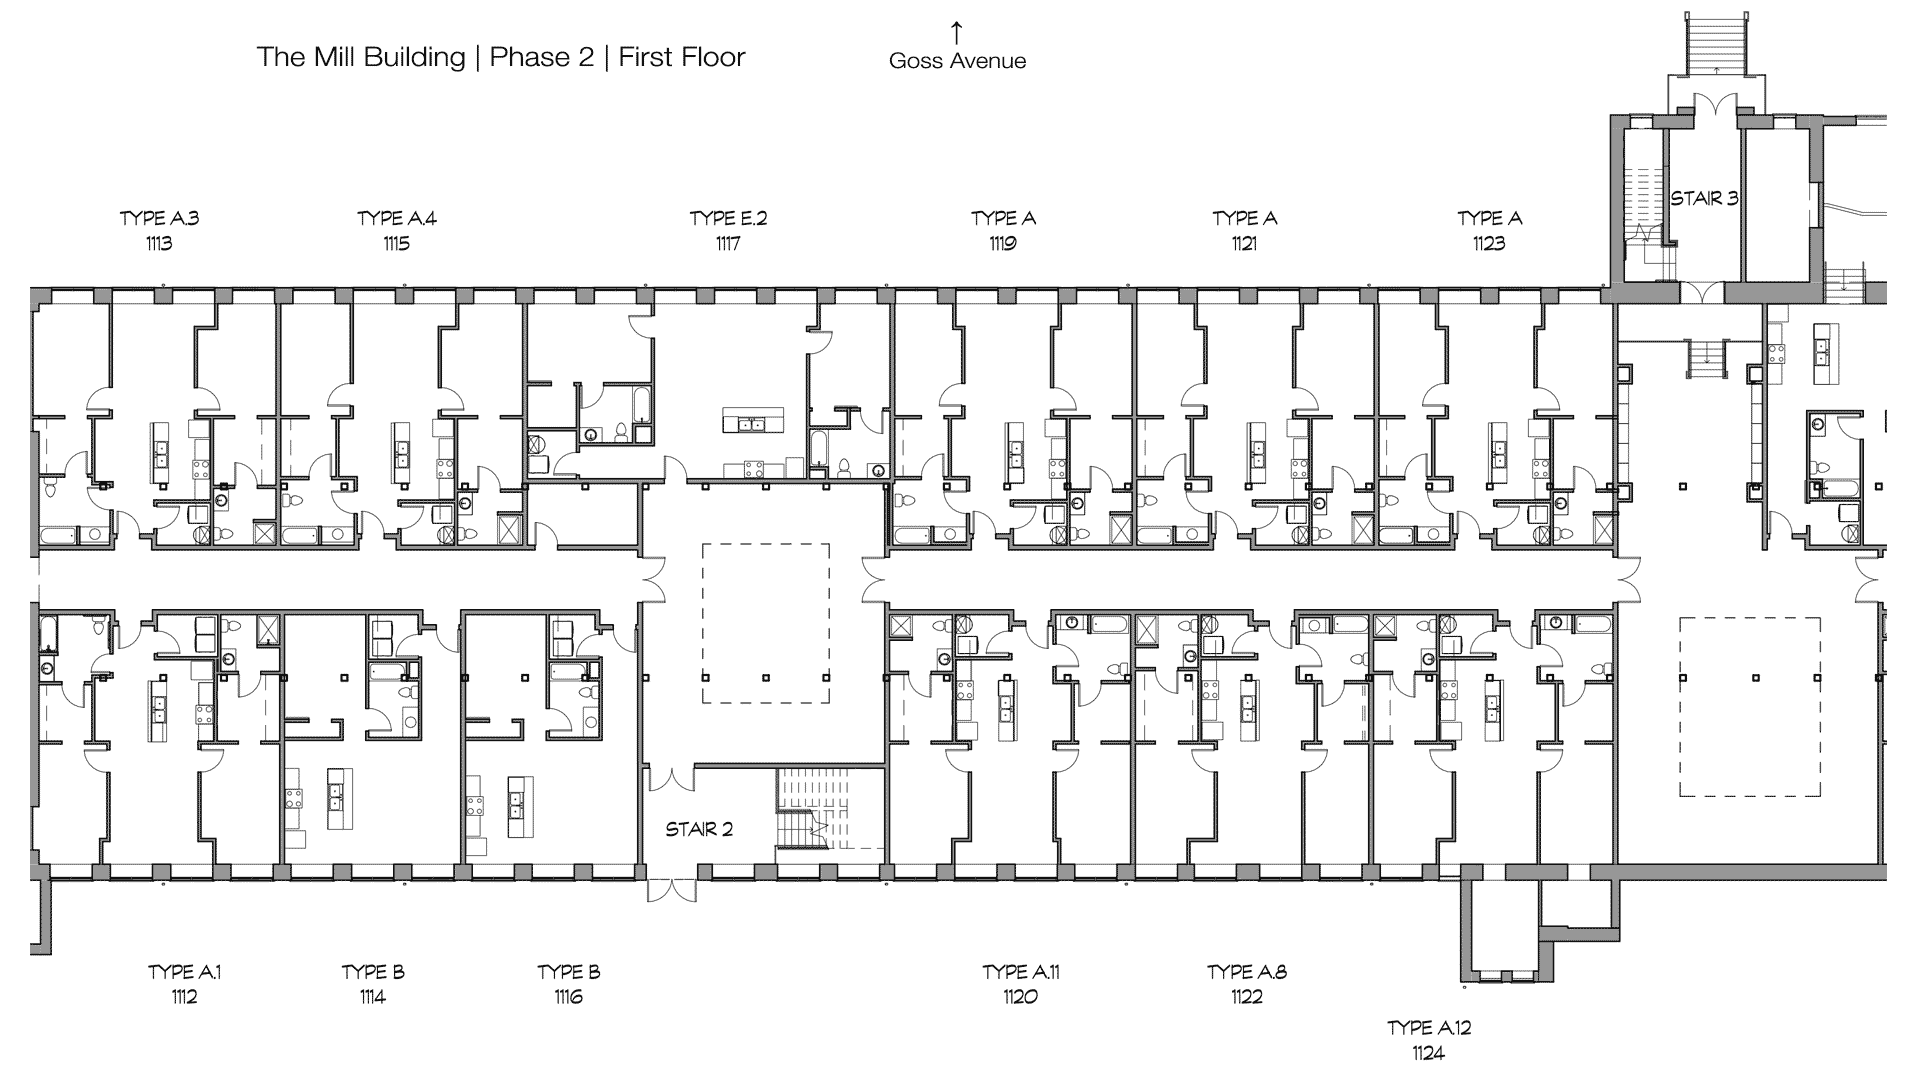 GML Mill Building | Phase 2 | First Floor